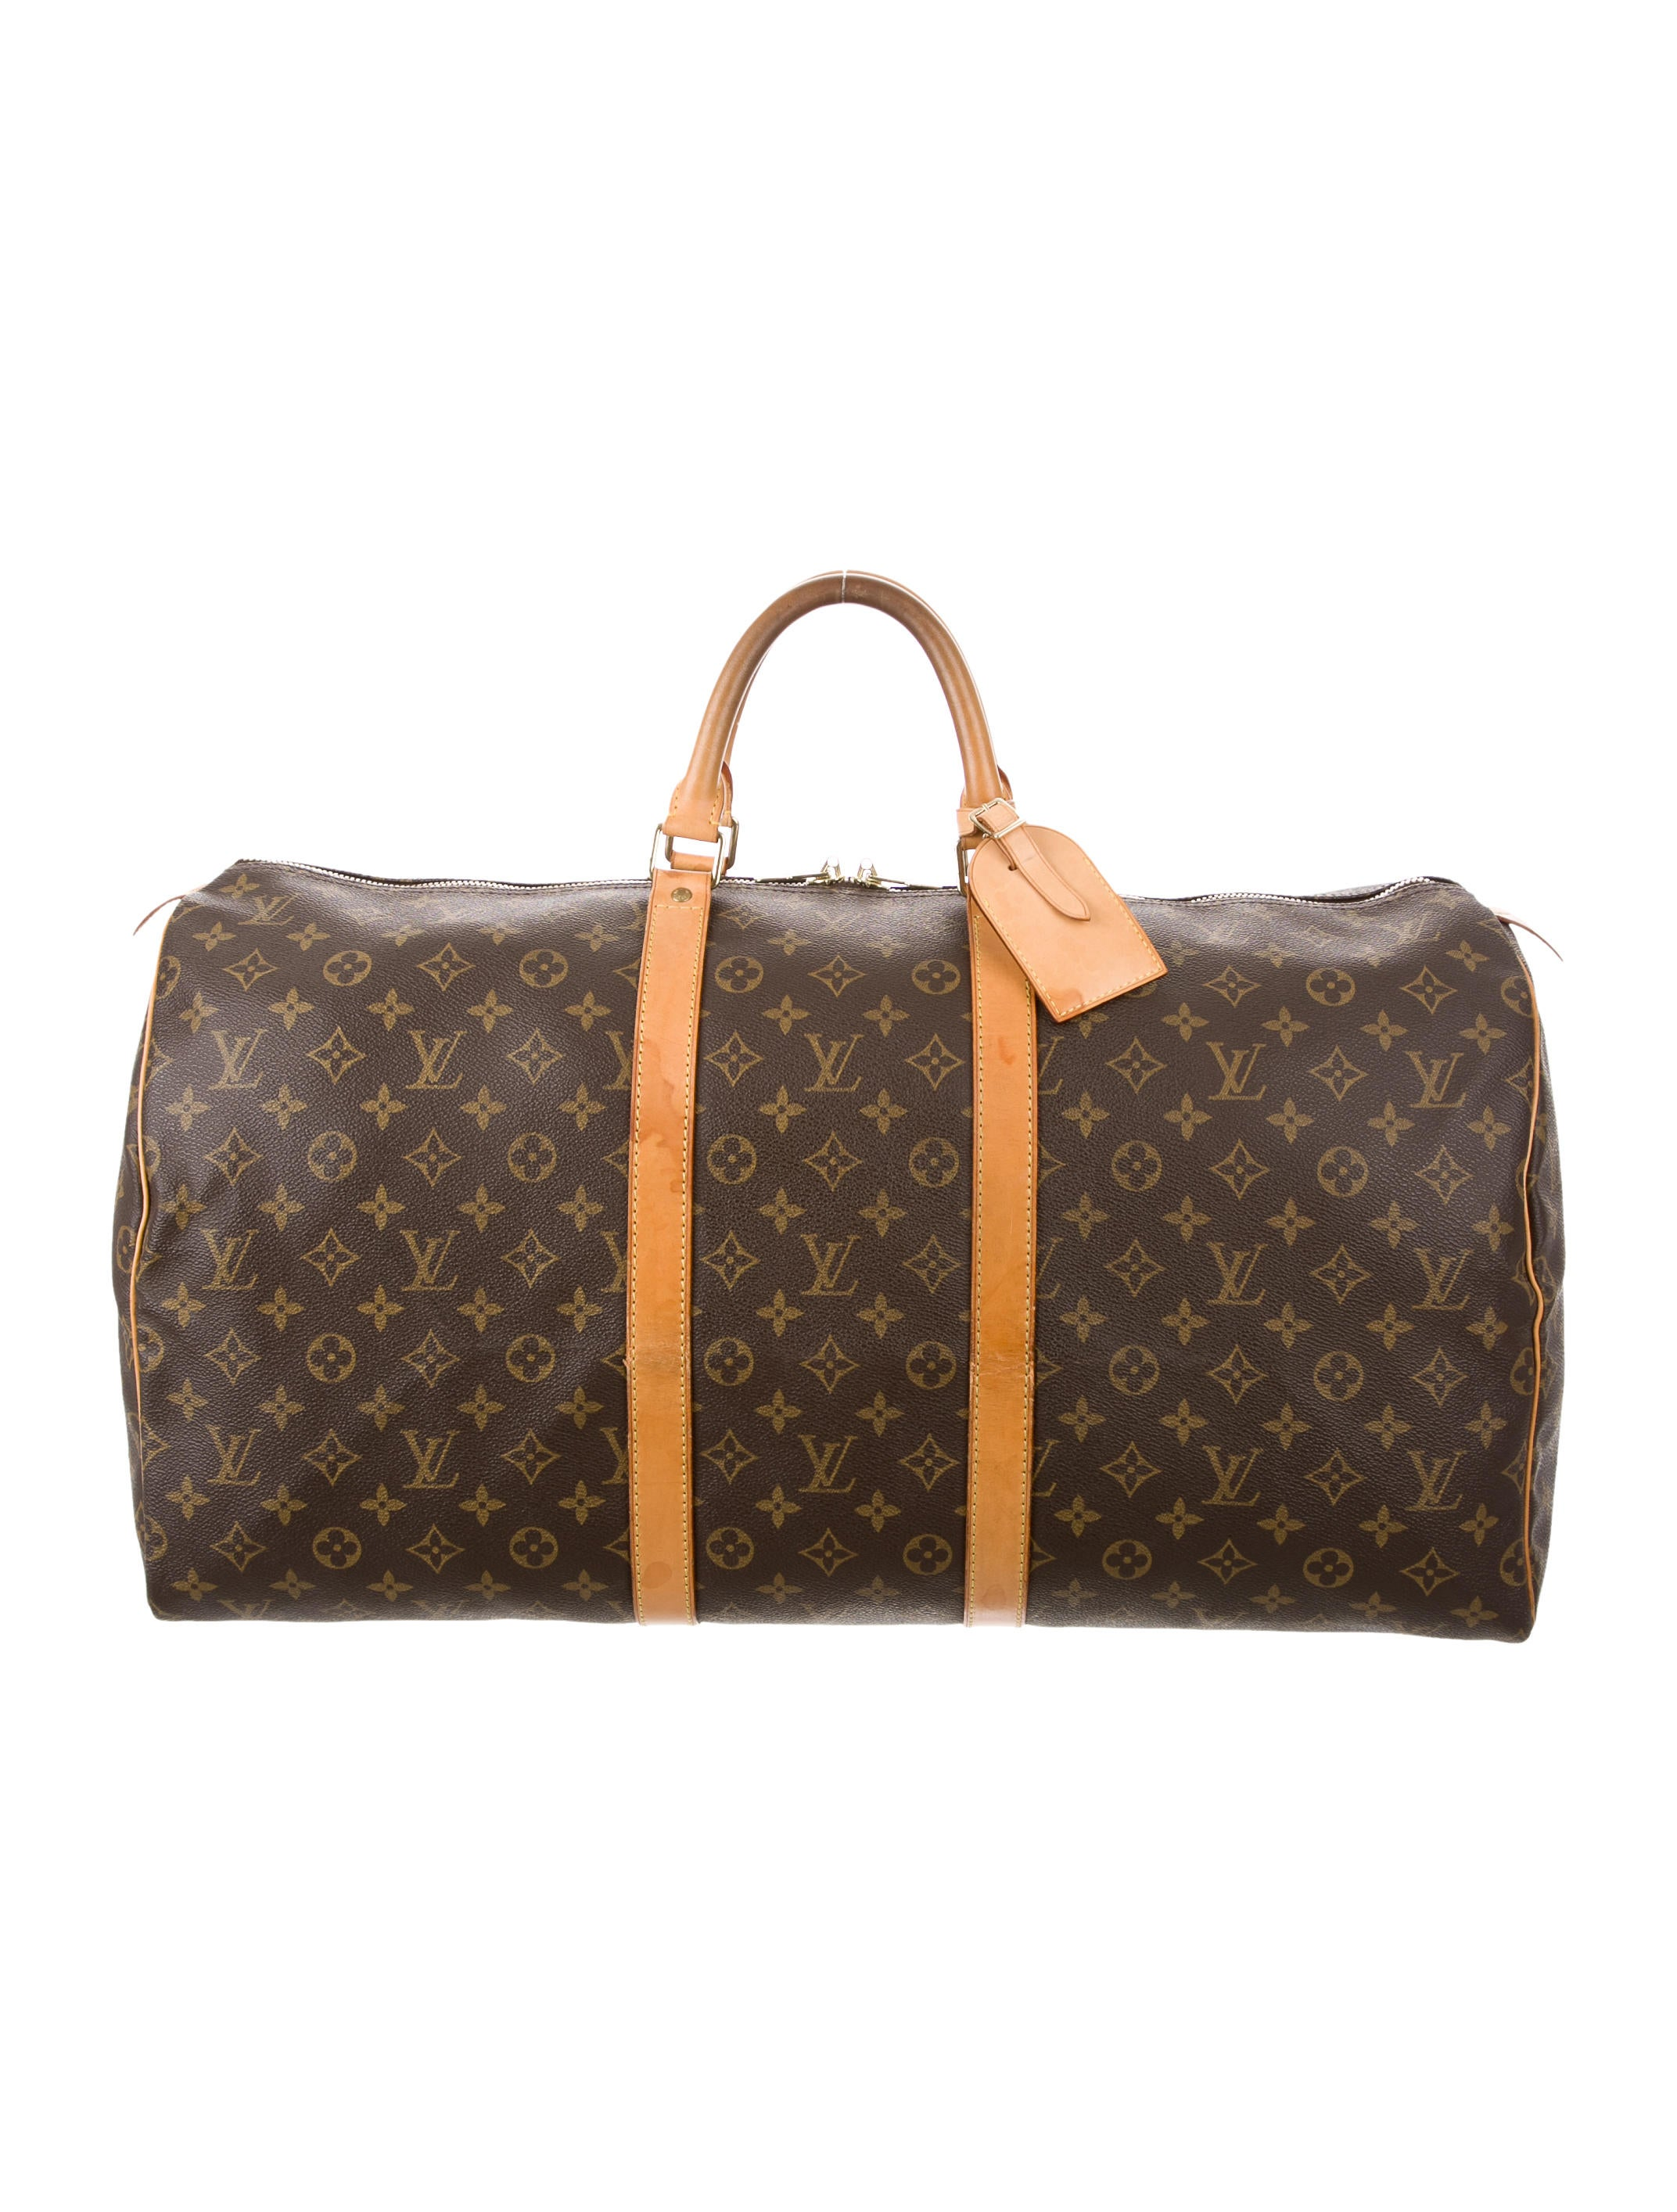 louis vuitton monogram keepall 55 bags lou121574 the. Black Bedroom Furniture Sets. Home Design Ideas